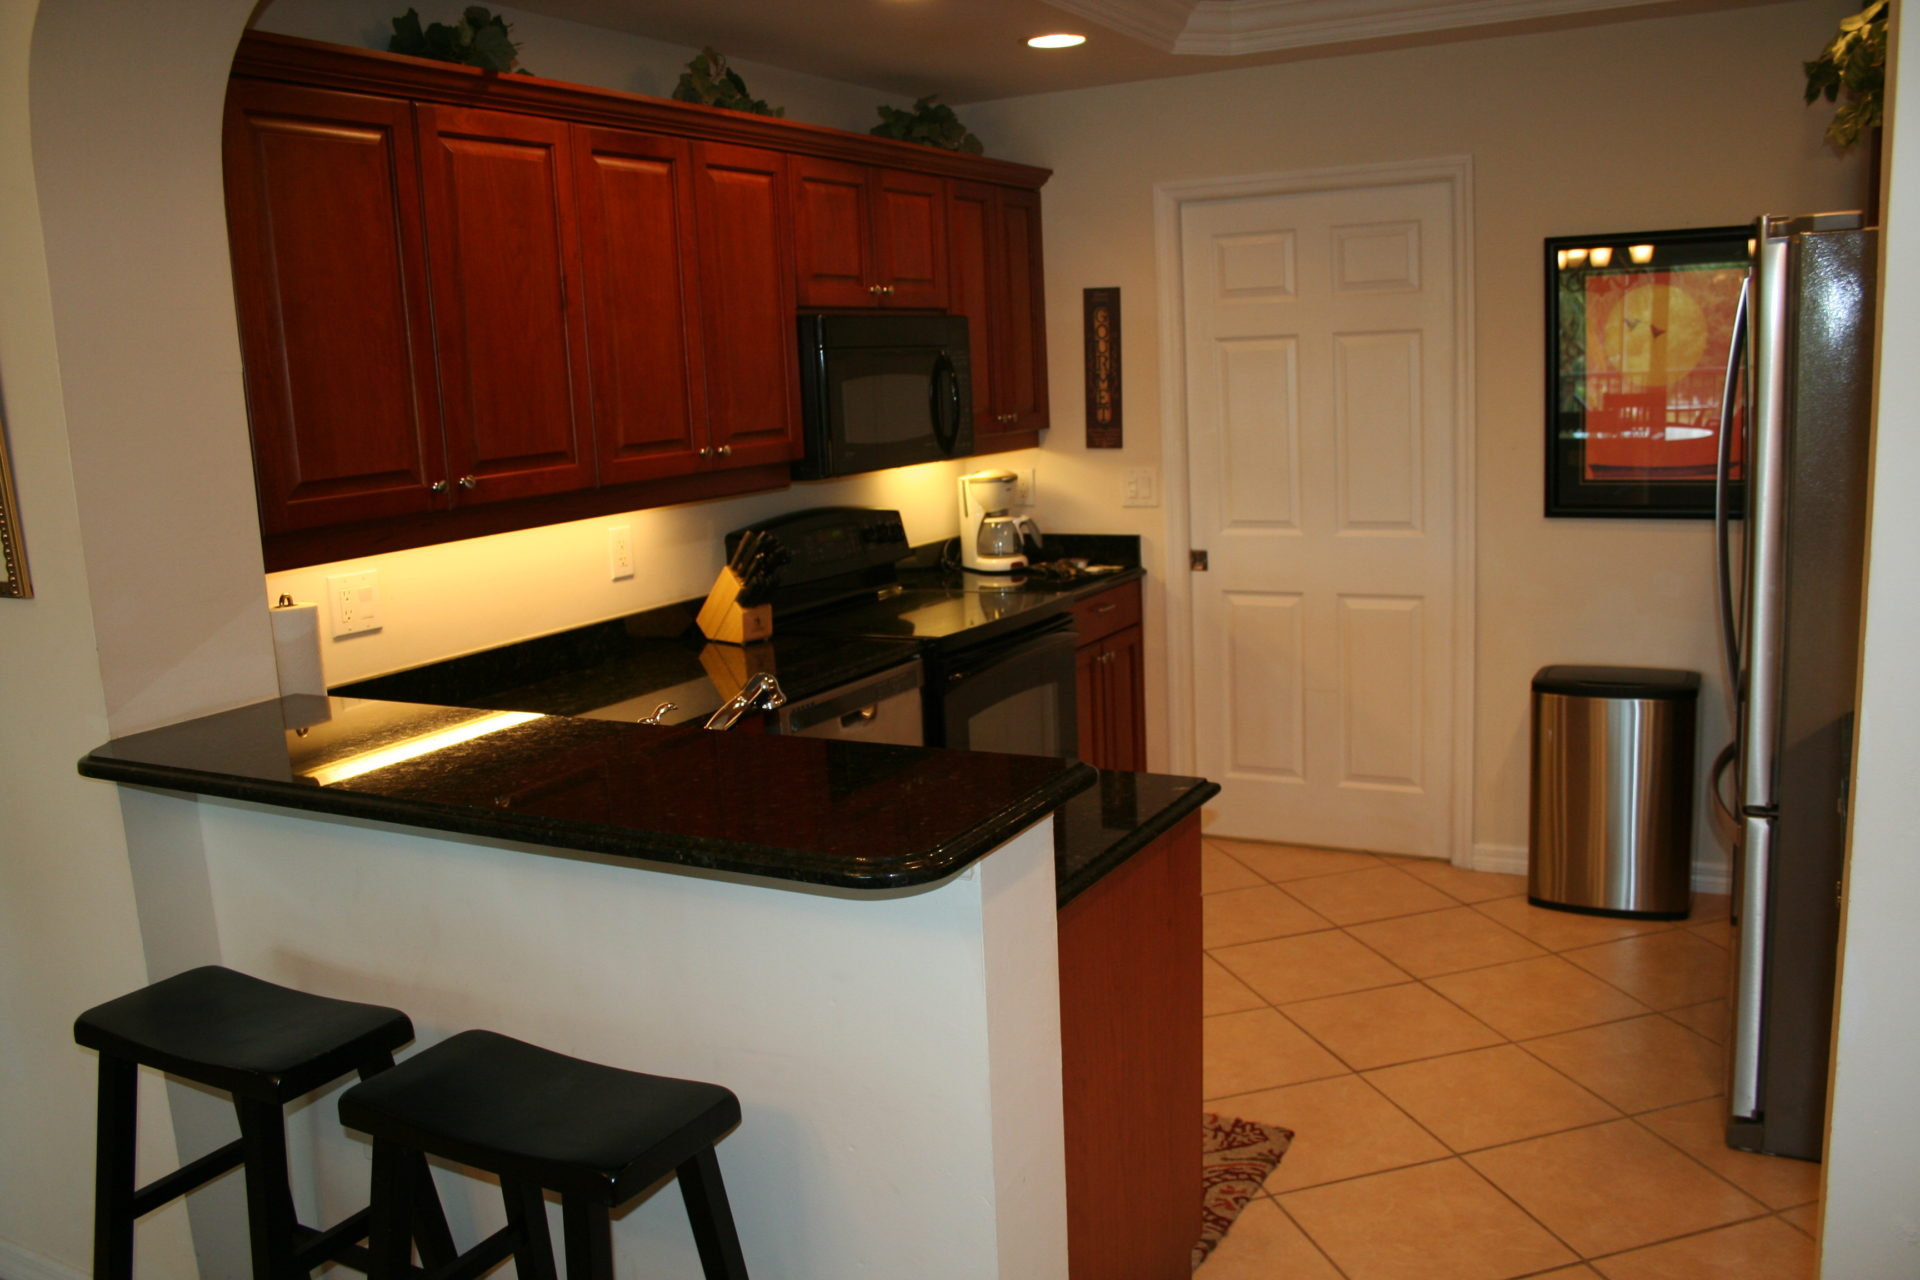 6 - Kitchen View 3